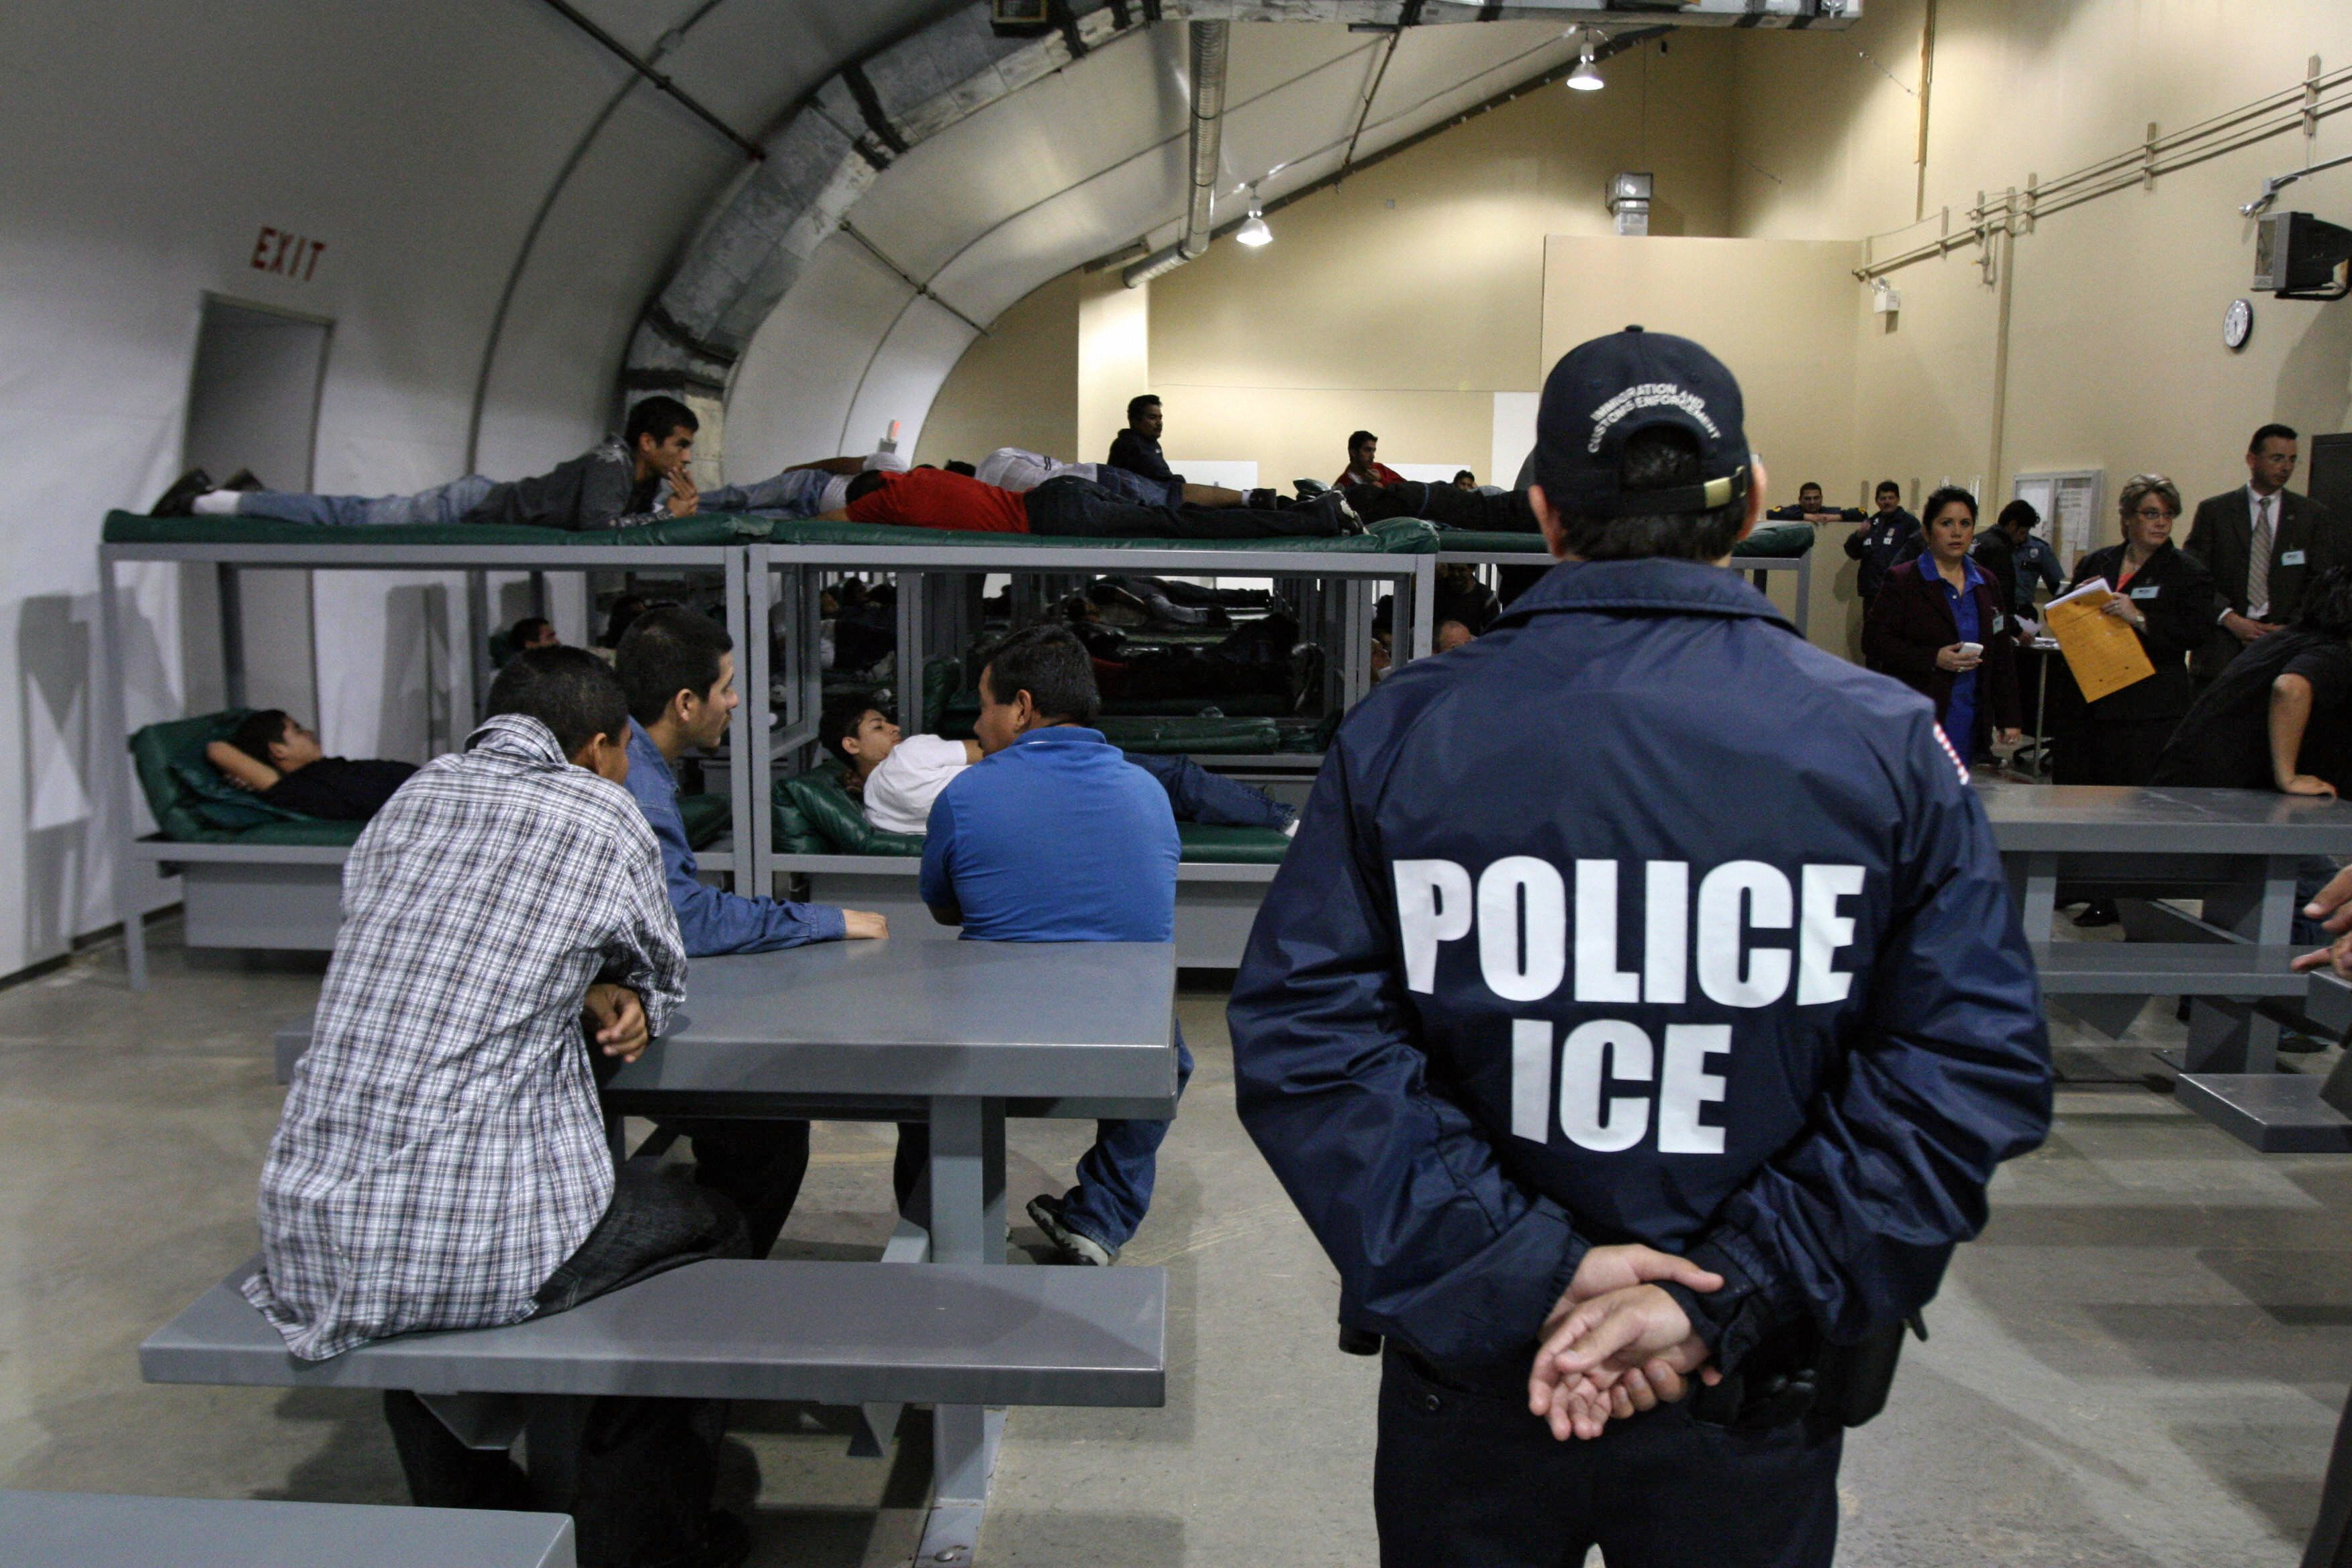 TO GO WITH AFP STORY BY CARLOS MARIO MARQUEZ An Immigration and Customs Enforcement (ICE) officer guards a group of 116 Salvadorean immigrants that wait to be deported,at Willacy Detention facility in Raymondville, Texas on December 18, 2008 early morning. The Willacy facility is used by the US Immigration and Customs Enforcement agency (ICE) to keep illegal immigrants in detention before they are deported. Today, 116 Salvadorean nationals --83 men and 33 women-- were woken up at 4 a.m. and transported in buses under strict surveillance to Harlengen's airport to be taken back to El Salvador.  AFP PHOTO/ Jose CABEZAS (Photo credit should read Jose CABEZAS/AFP/Getty Images)